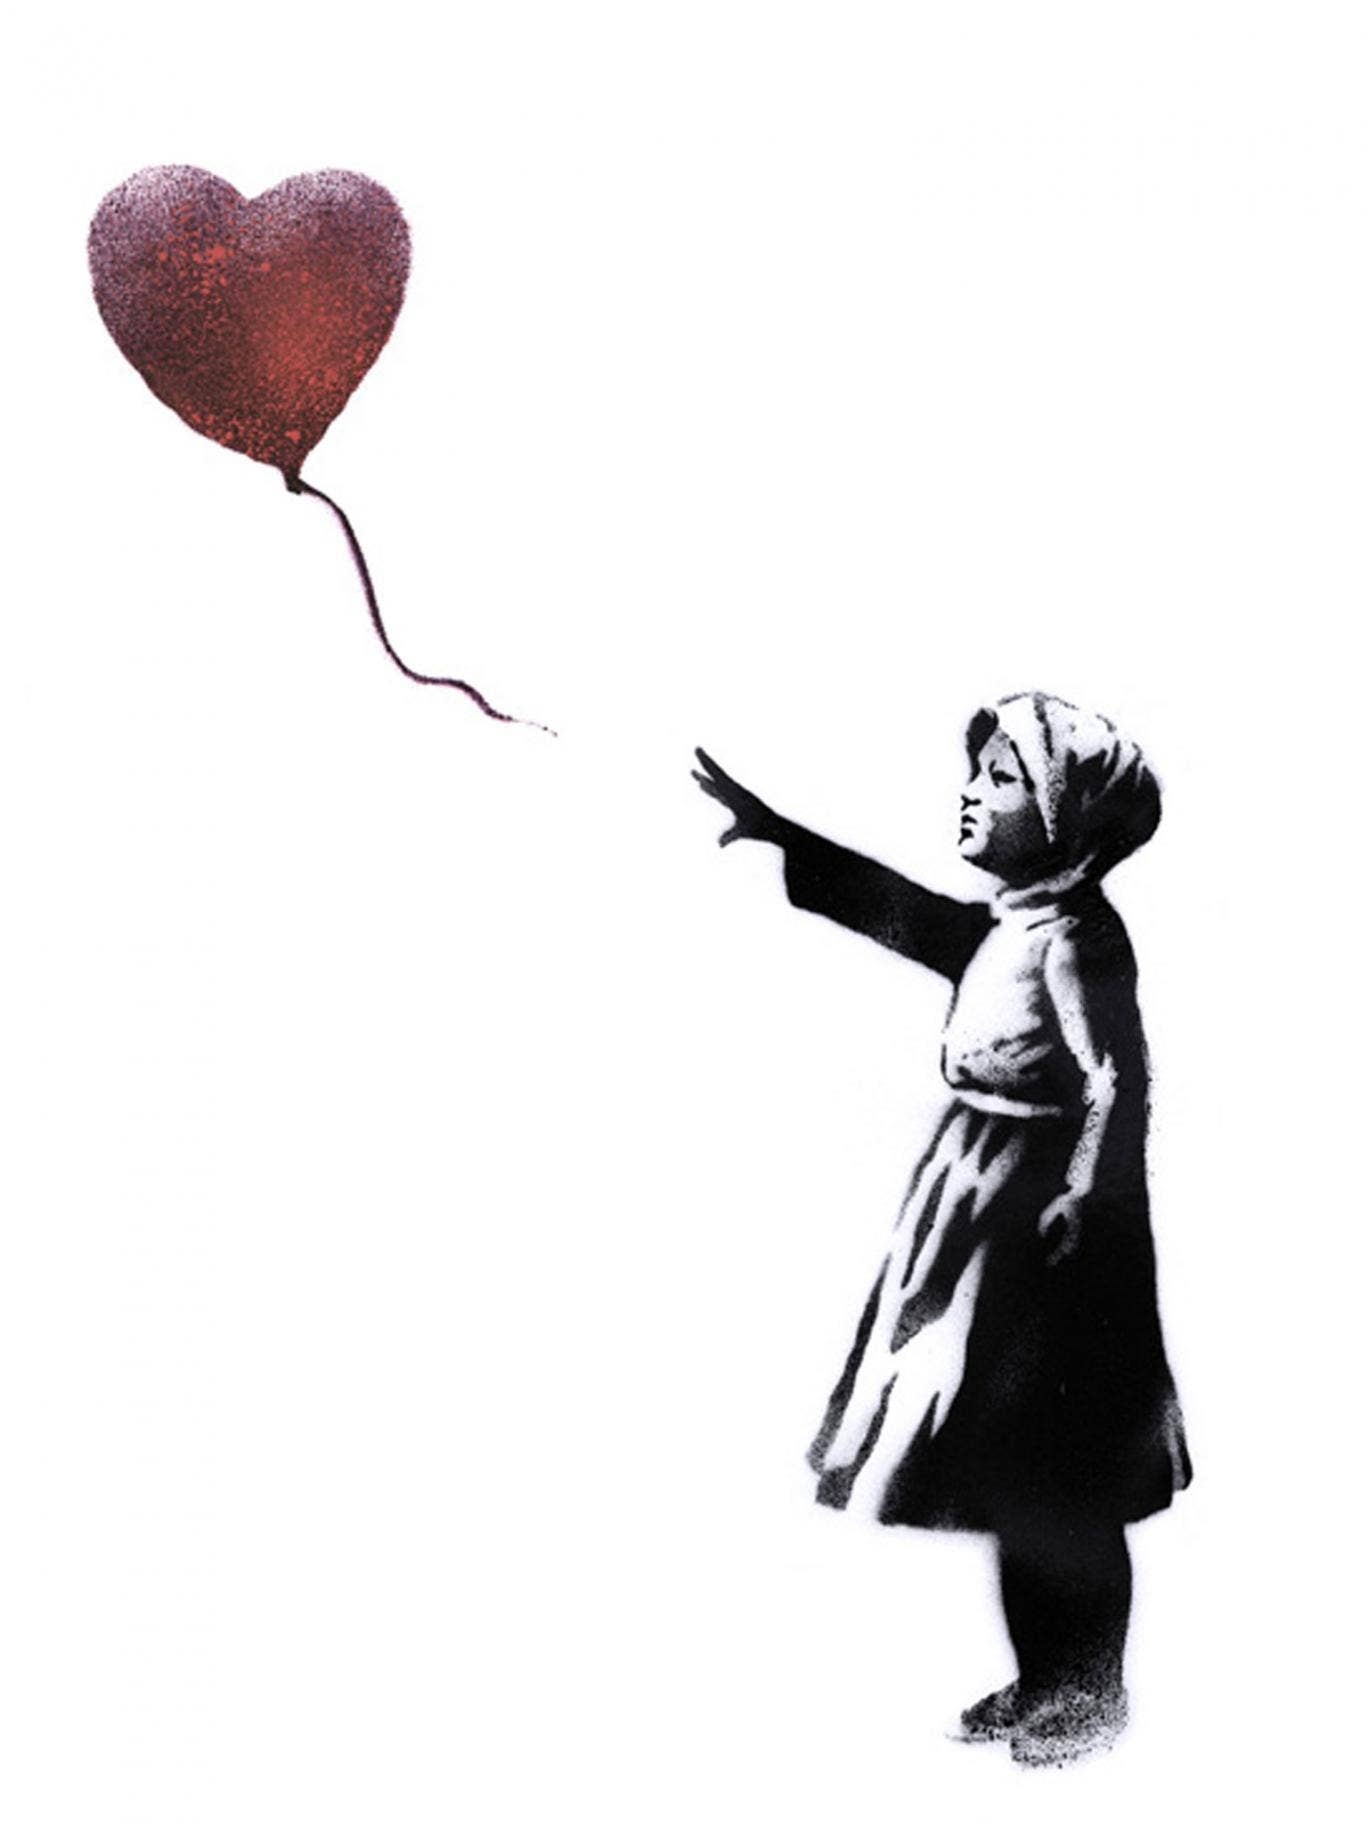 Banksy has reworked his girl with heart balloon stencil to mark the third anniversary of the start of the Syria conflict